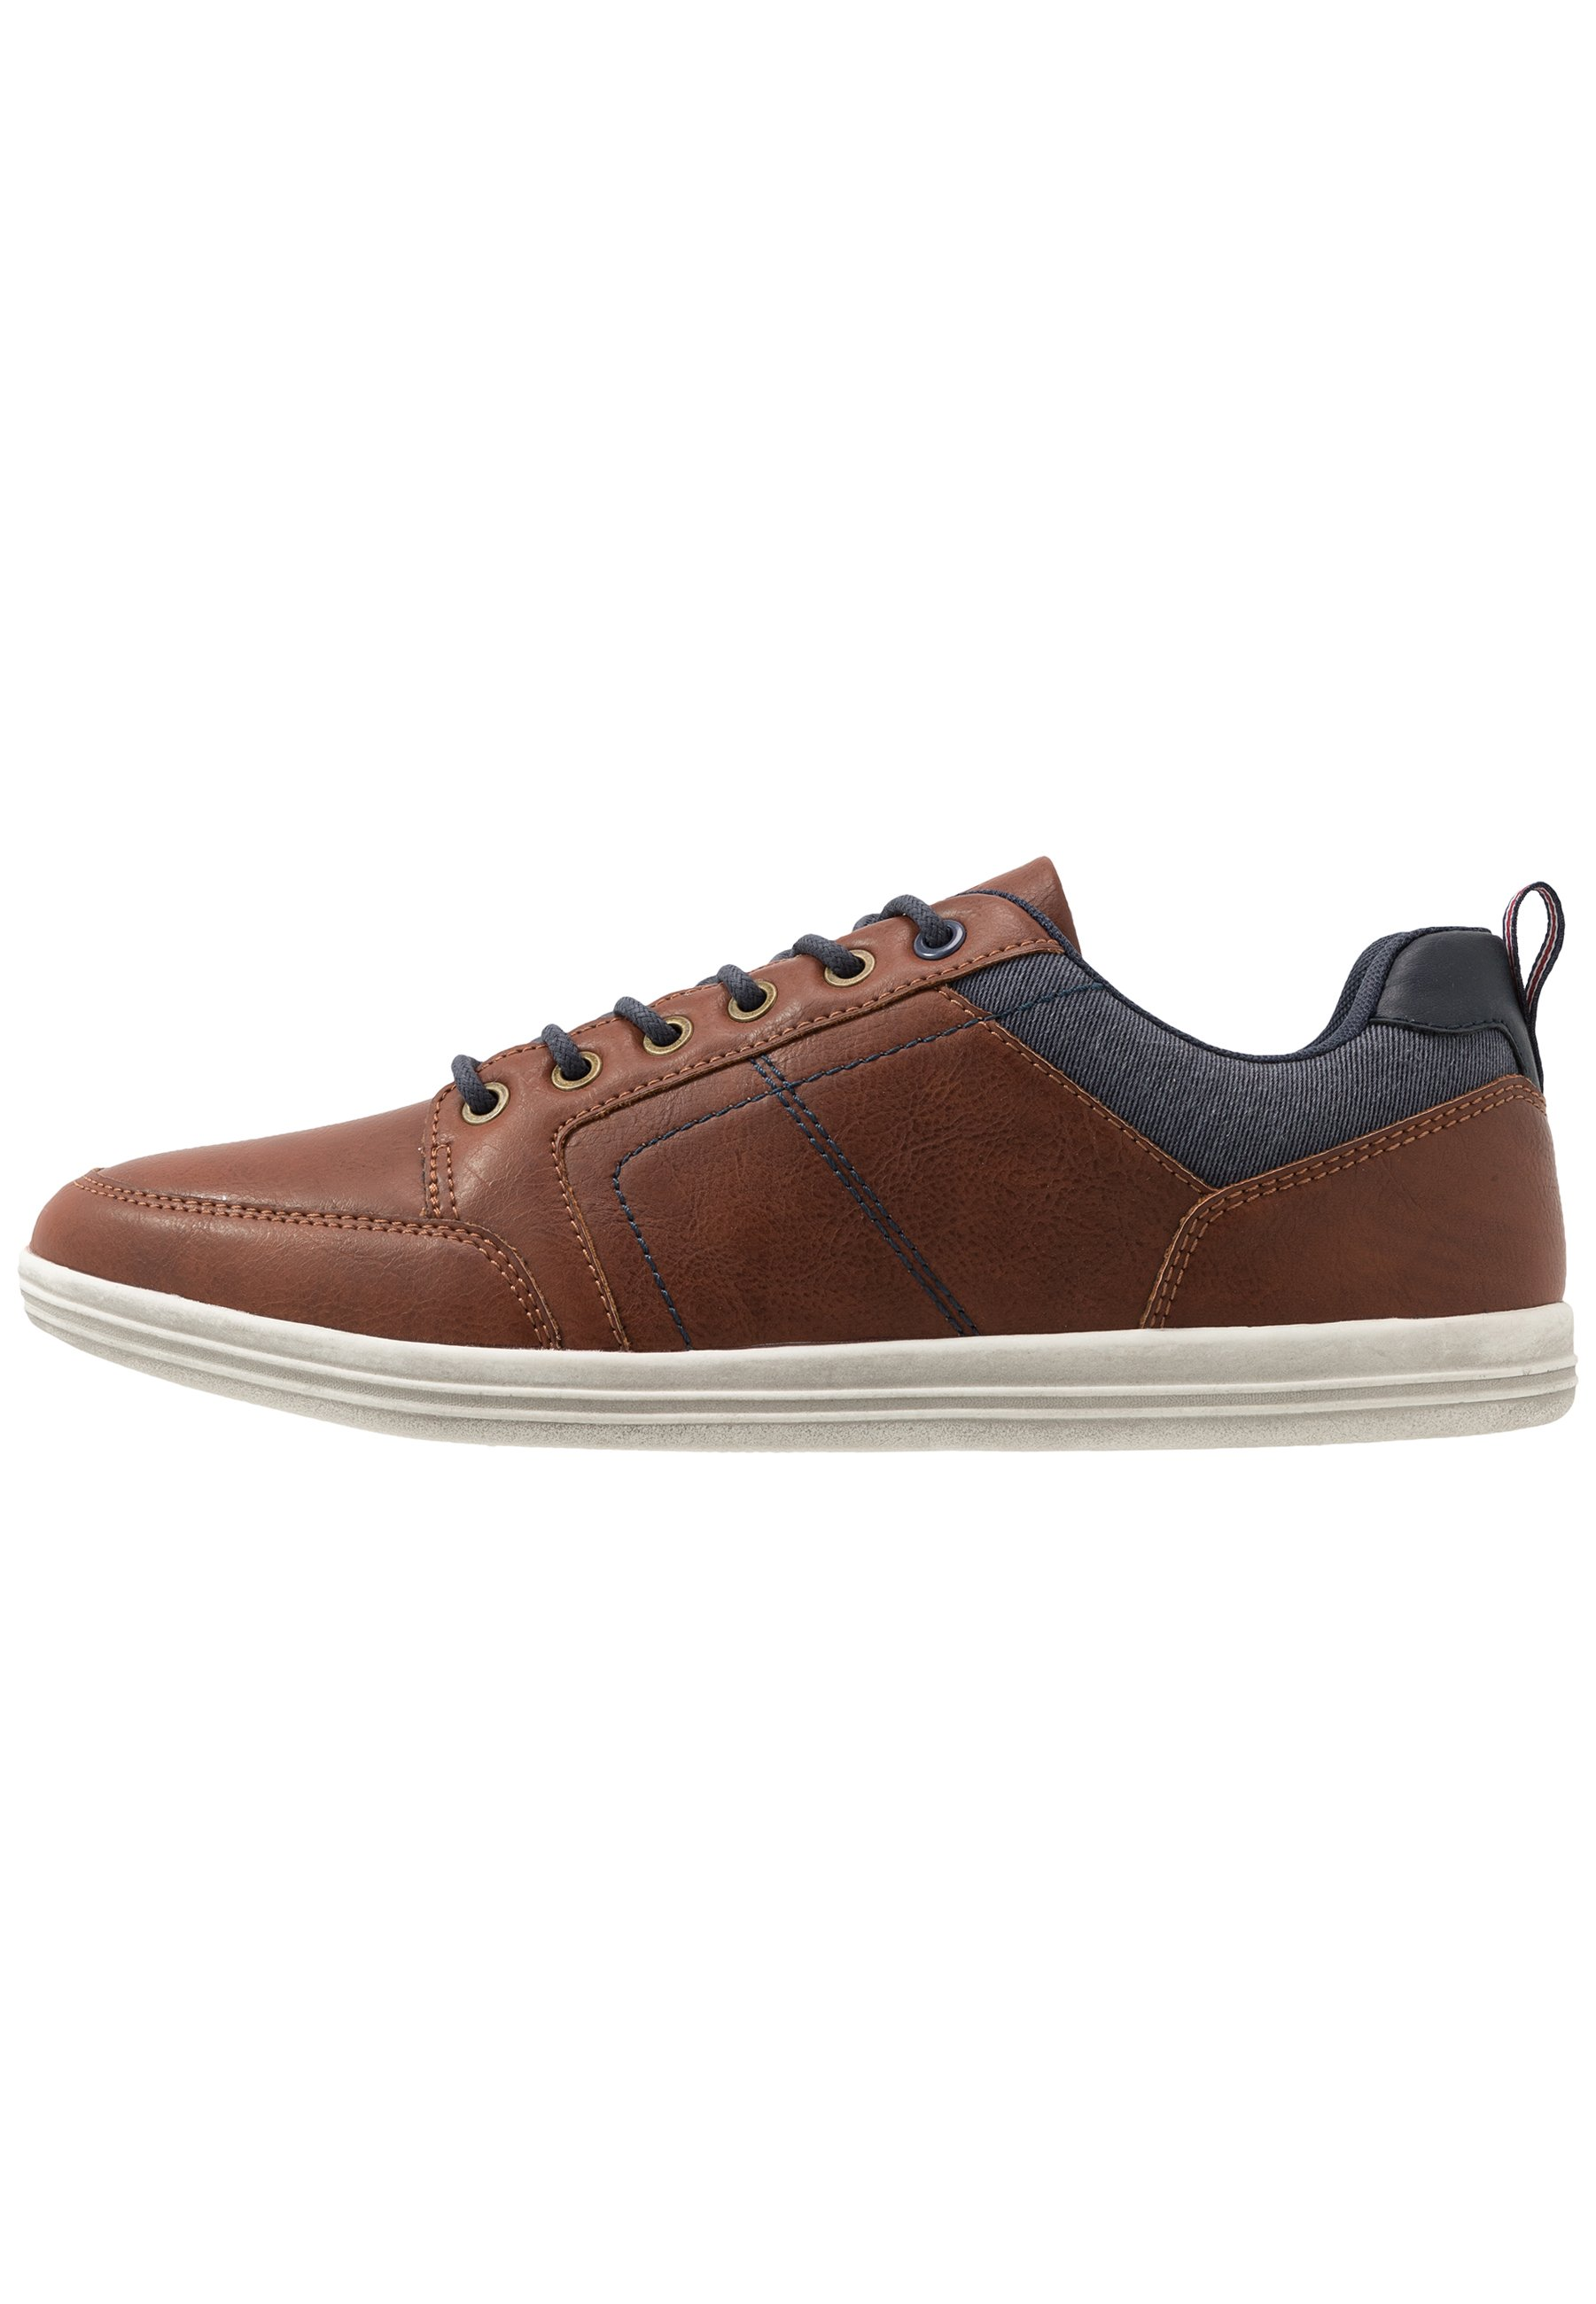 Pier One Joggesko cognac Zalando.no